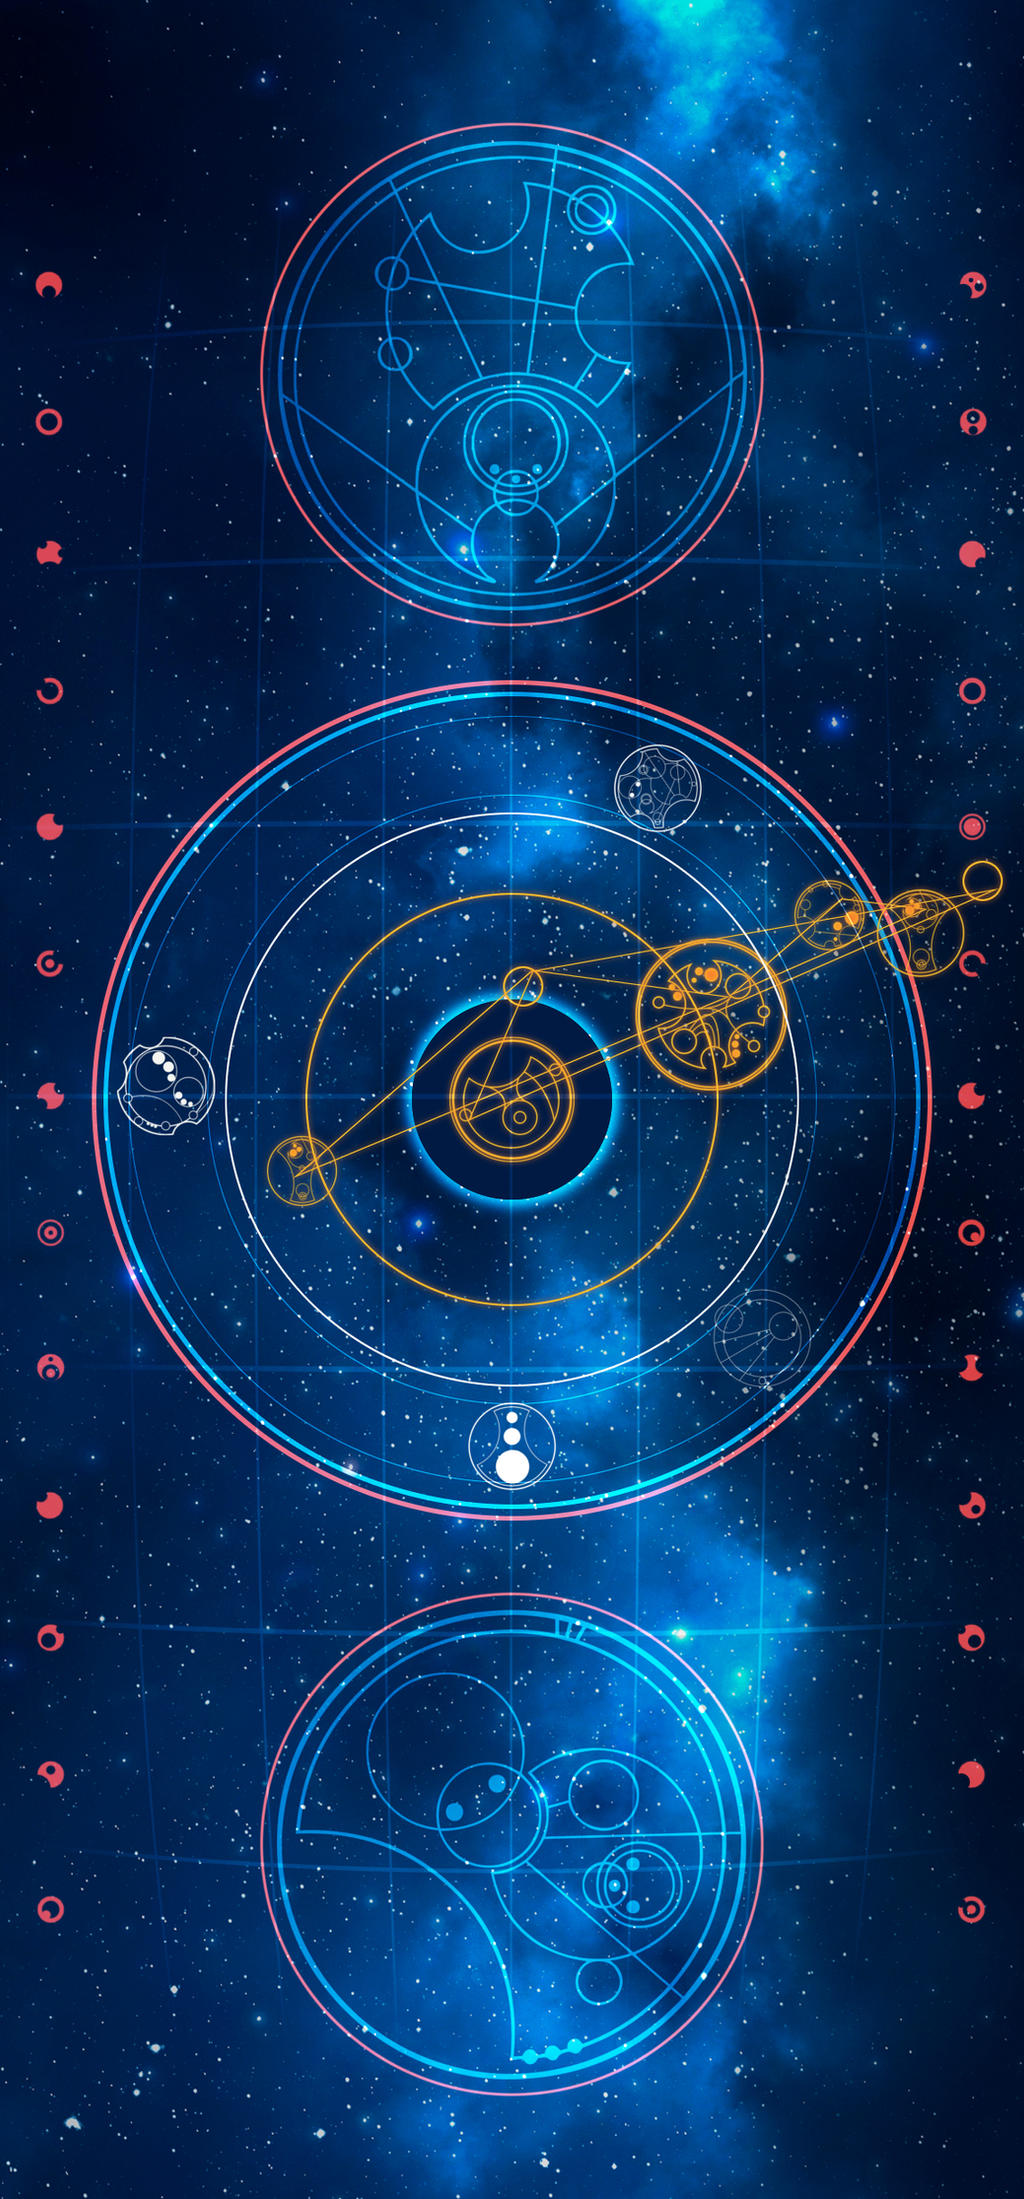 Tardis Console Display Iphone X Wallpaper By Ccommagic On Deviantart